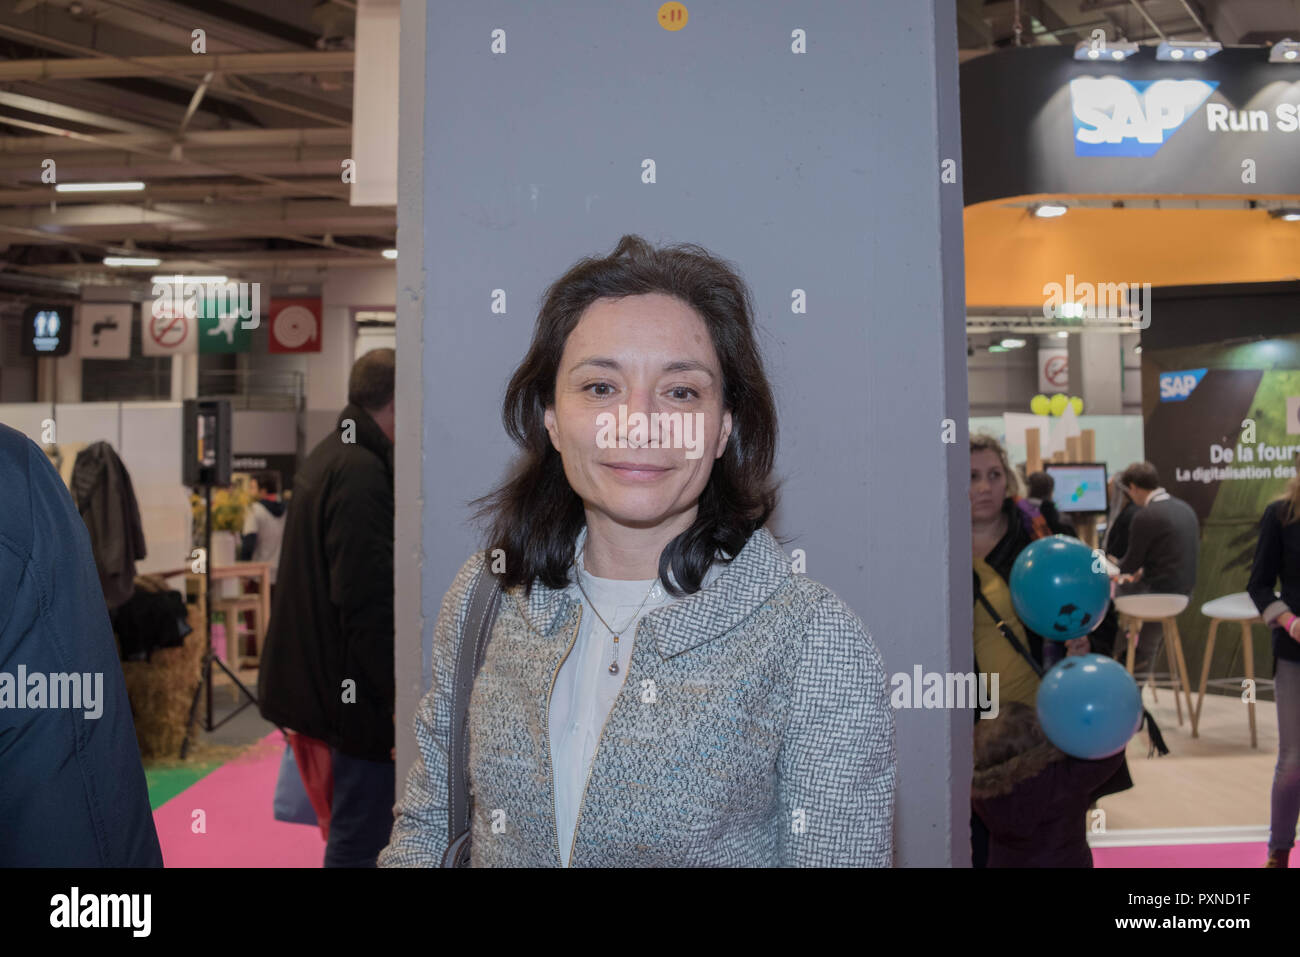 Visit of Julien Denormandie and meeting with Pierre Moscovici then with Delphine Gény-Stephann at the International Salon de Agriculture - Stock Image